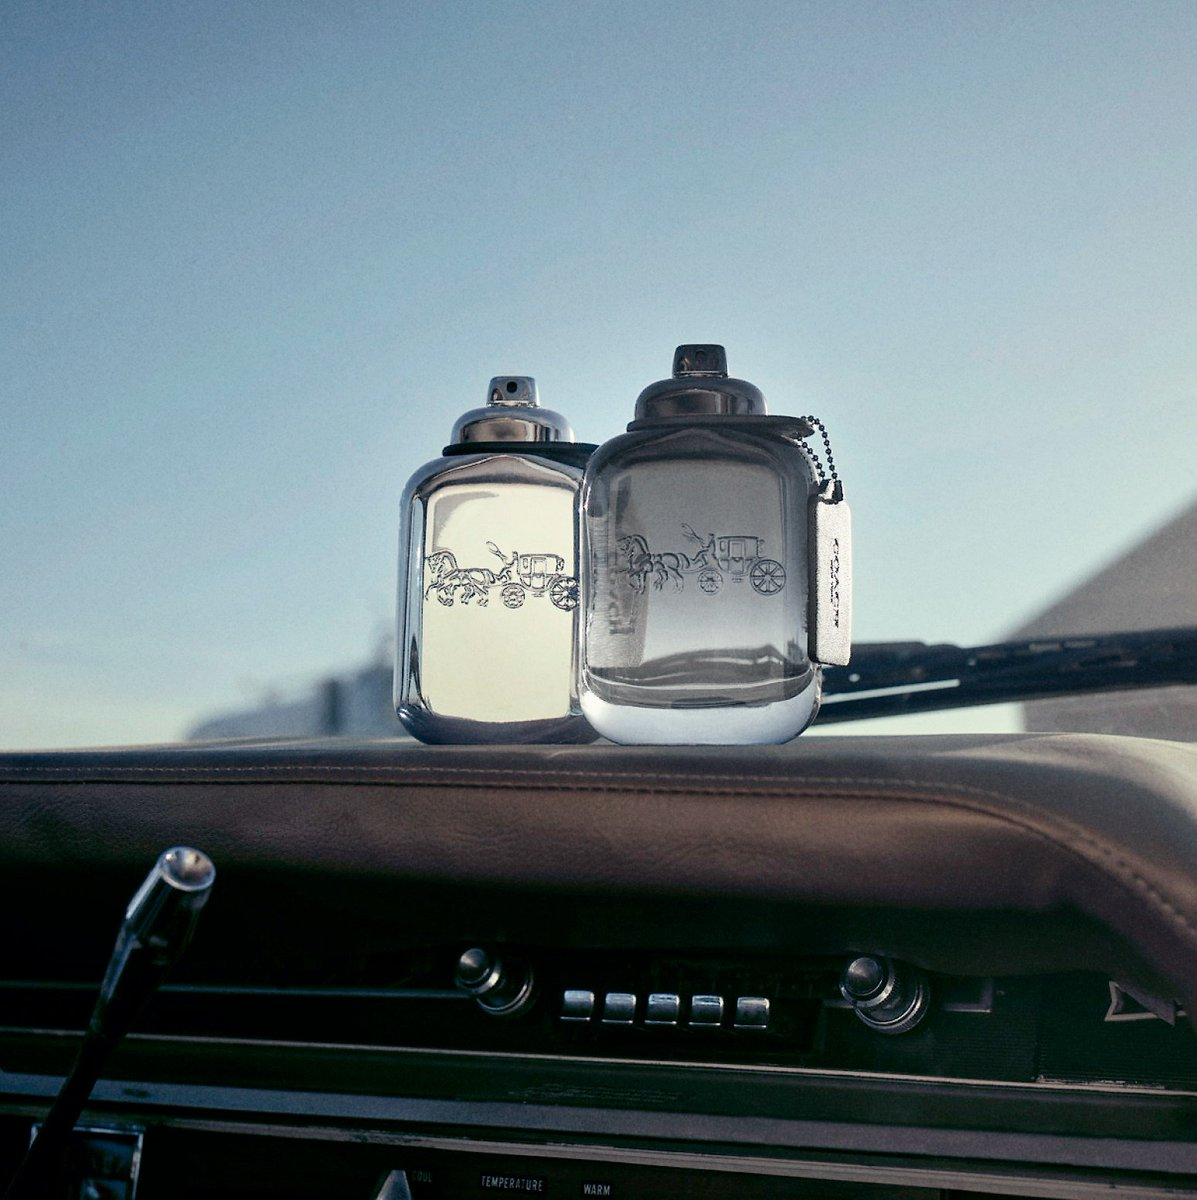 Inspired by all-American dreamers, our two men's fragrances #CoachPlatinum and #CoachforMen capture the energy of the open road. http://on.coach.com/MenFragrance #CoachNY